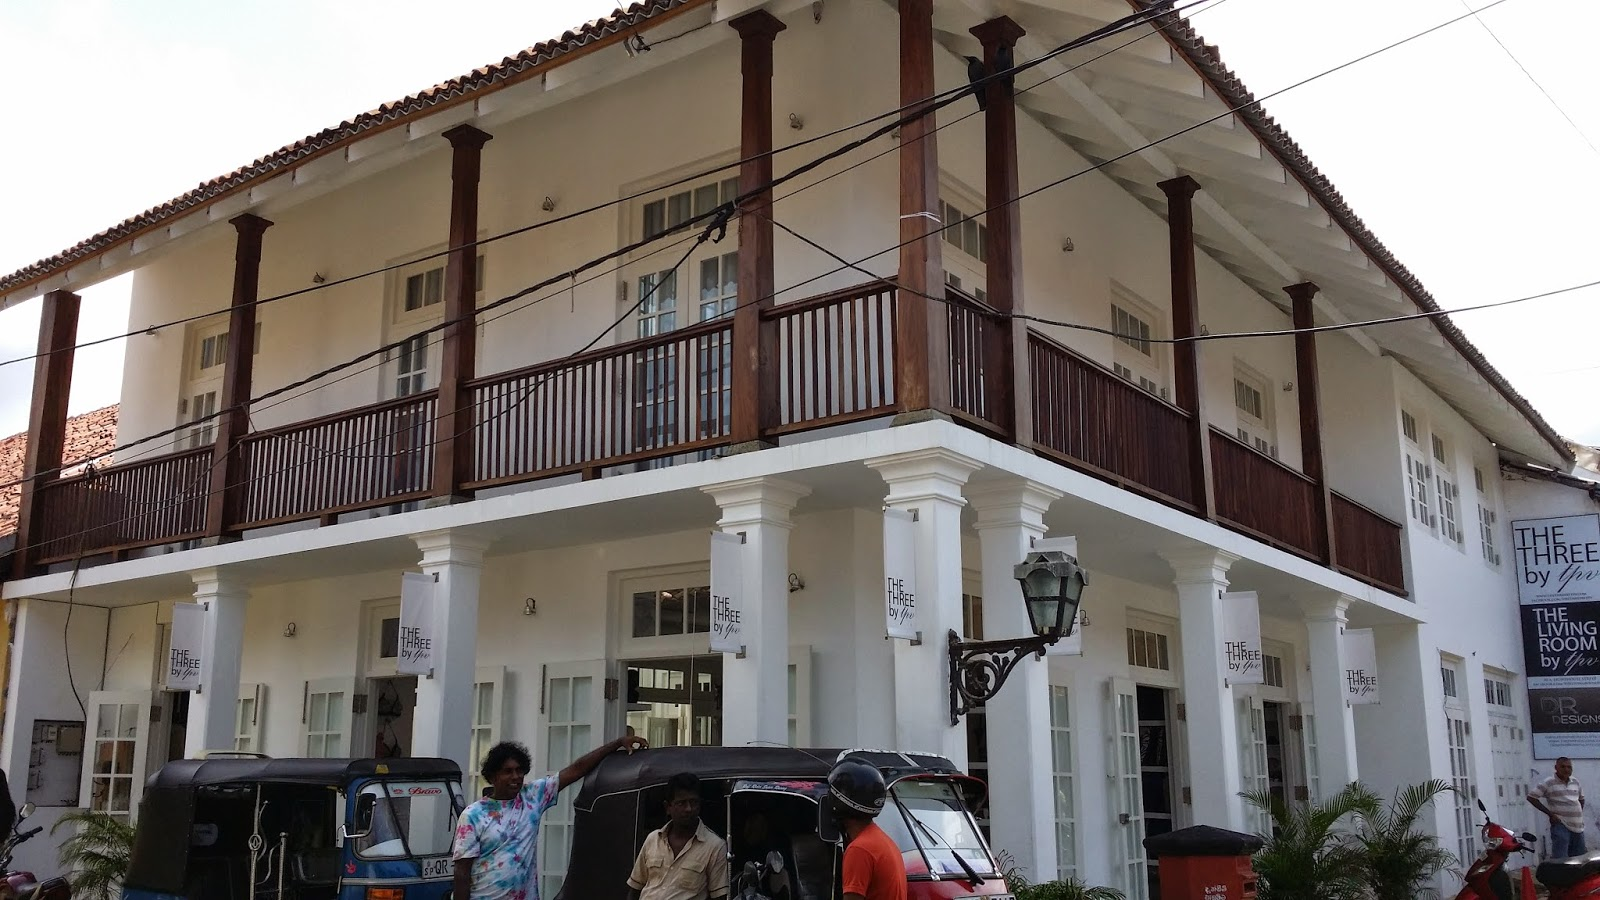 Casa colonial de Galle (Sri Lanka)